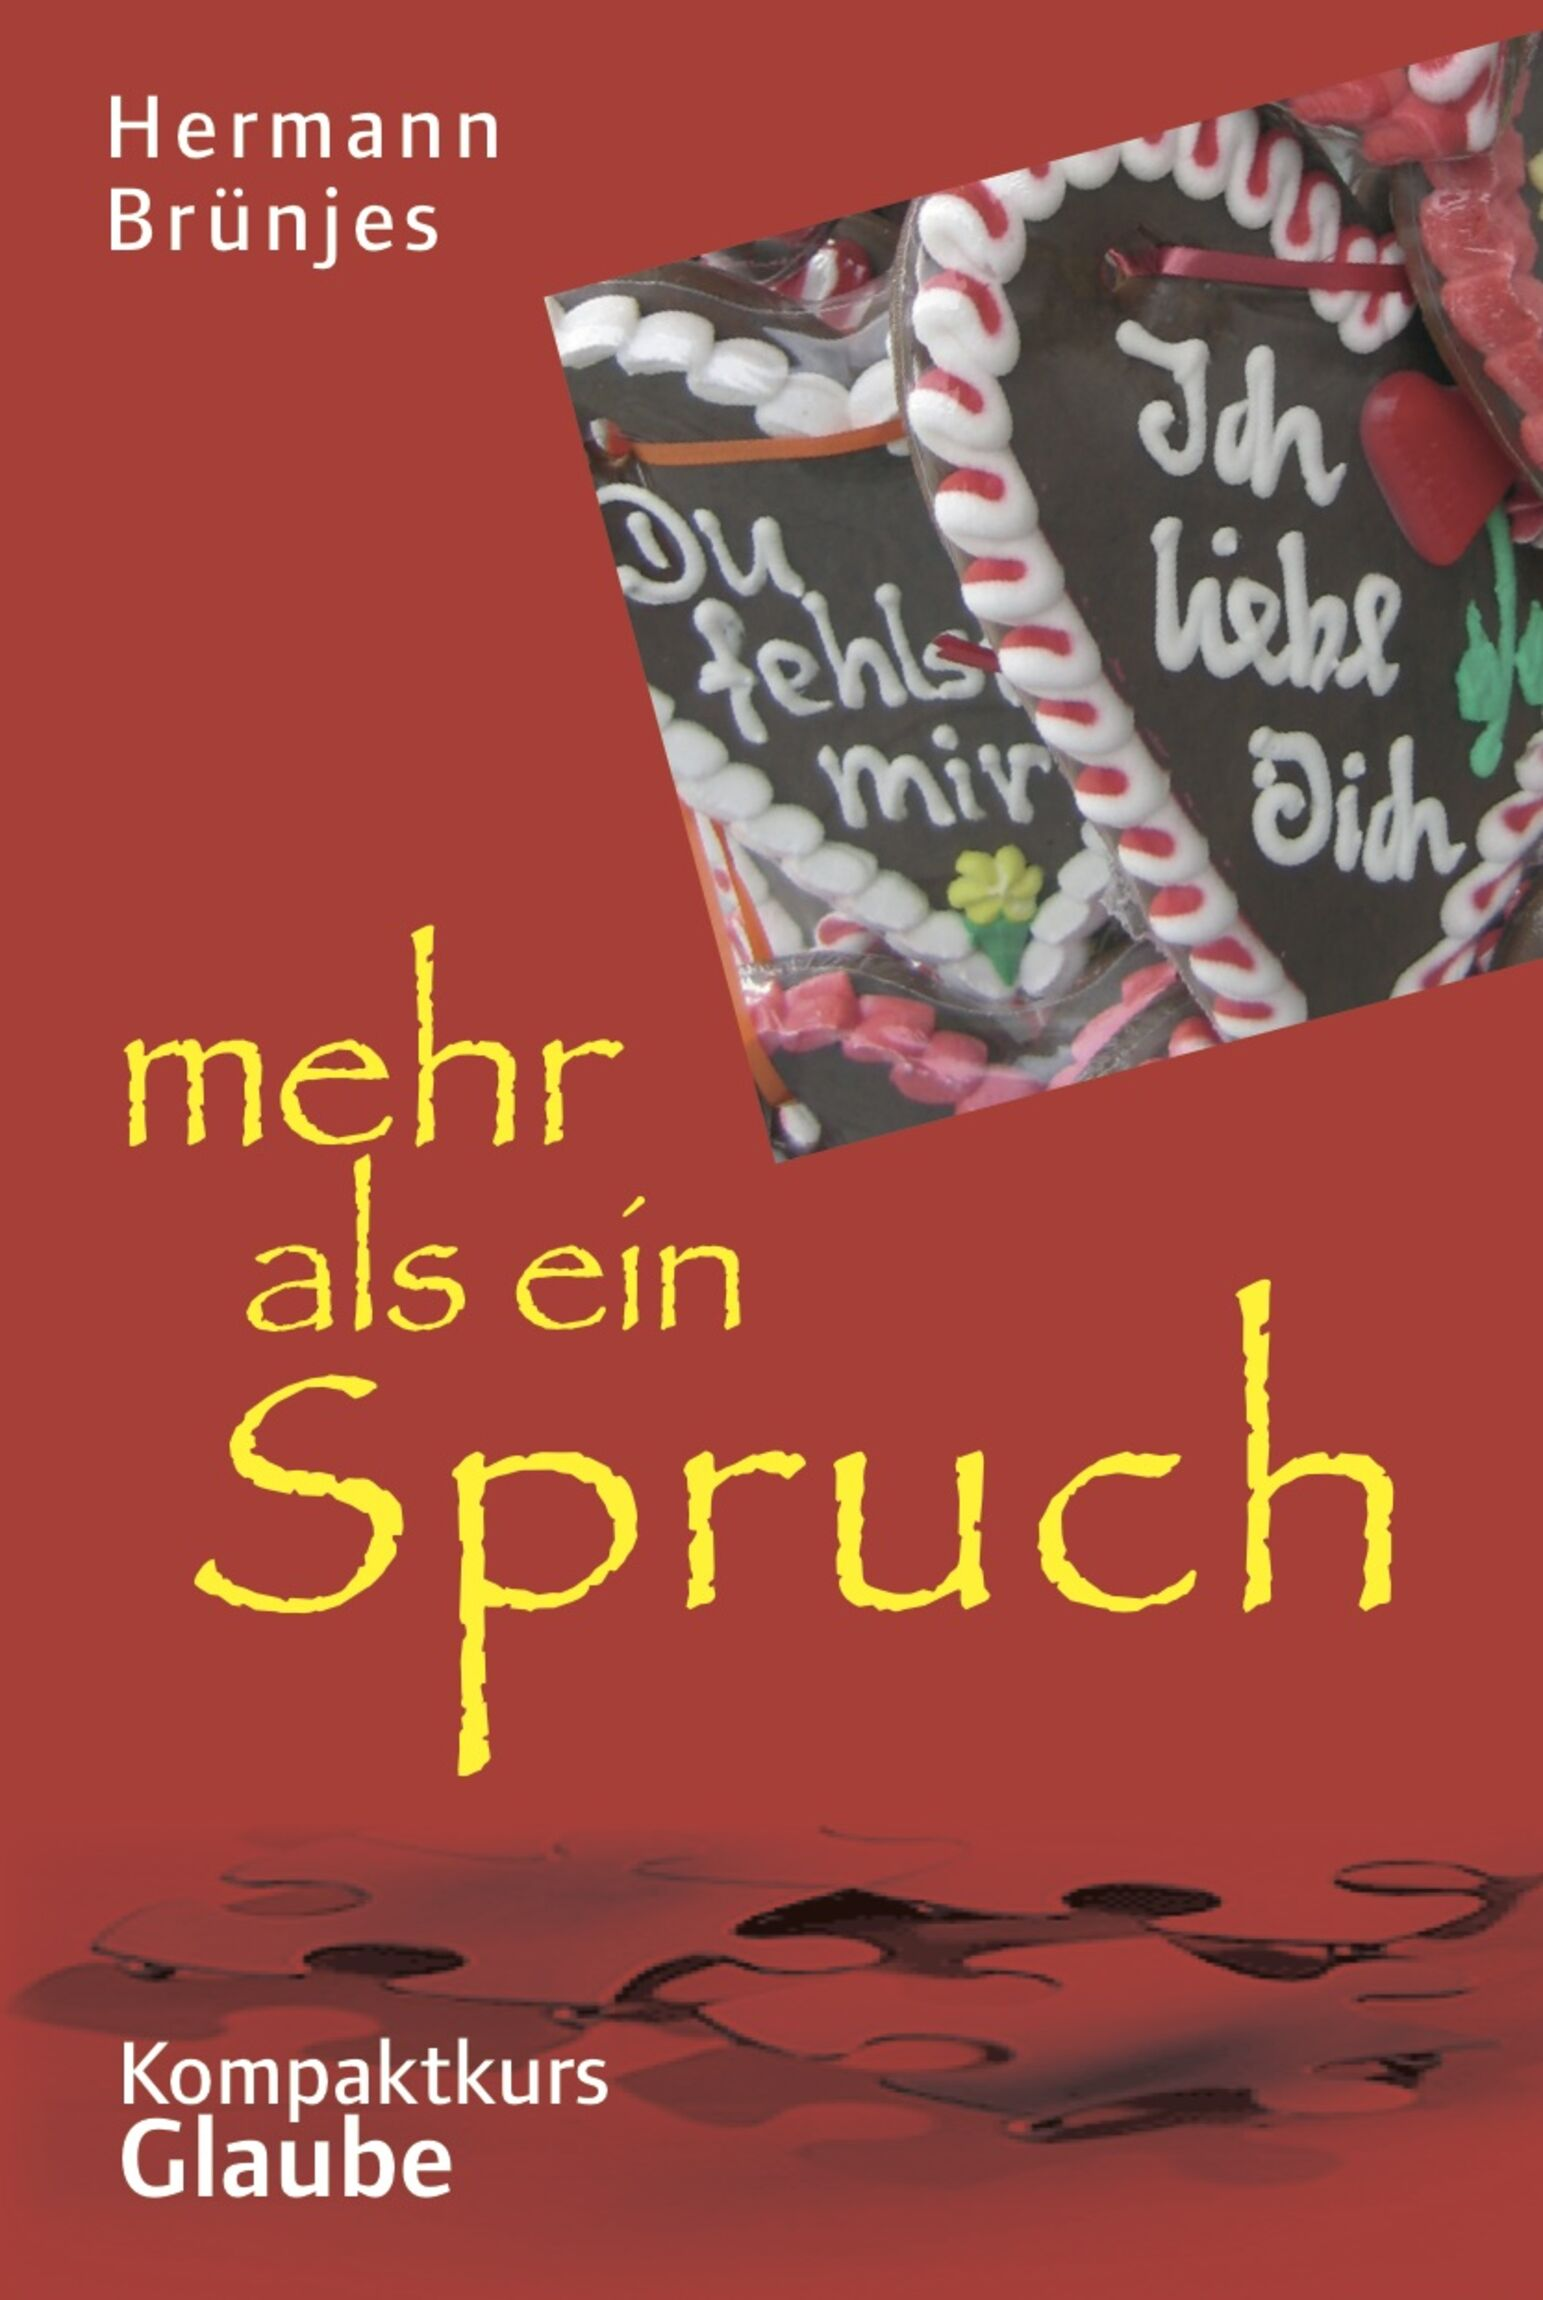 Spruch_Cover_Lesebuch